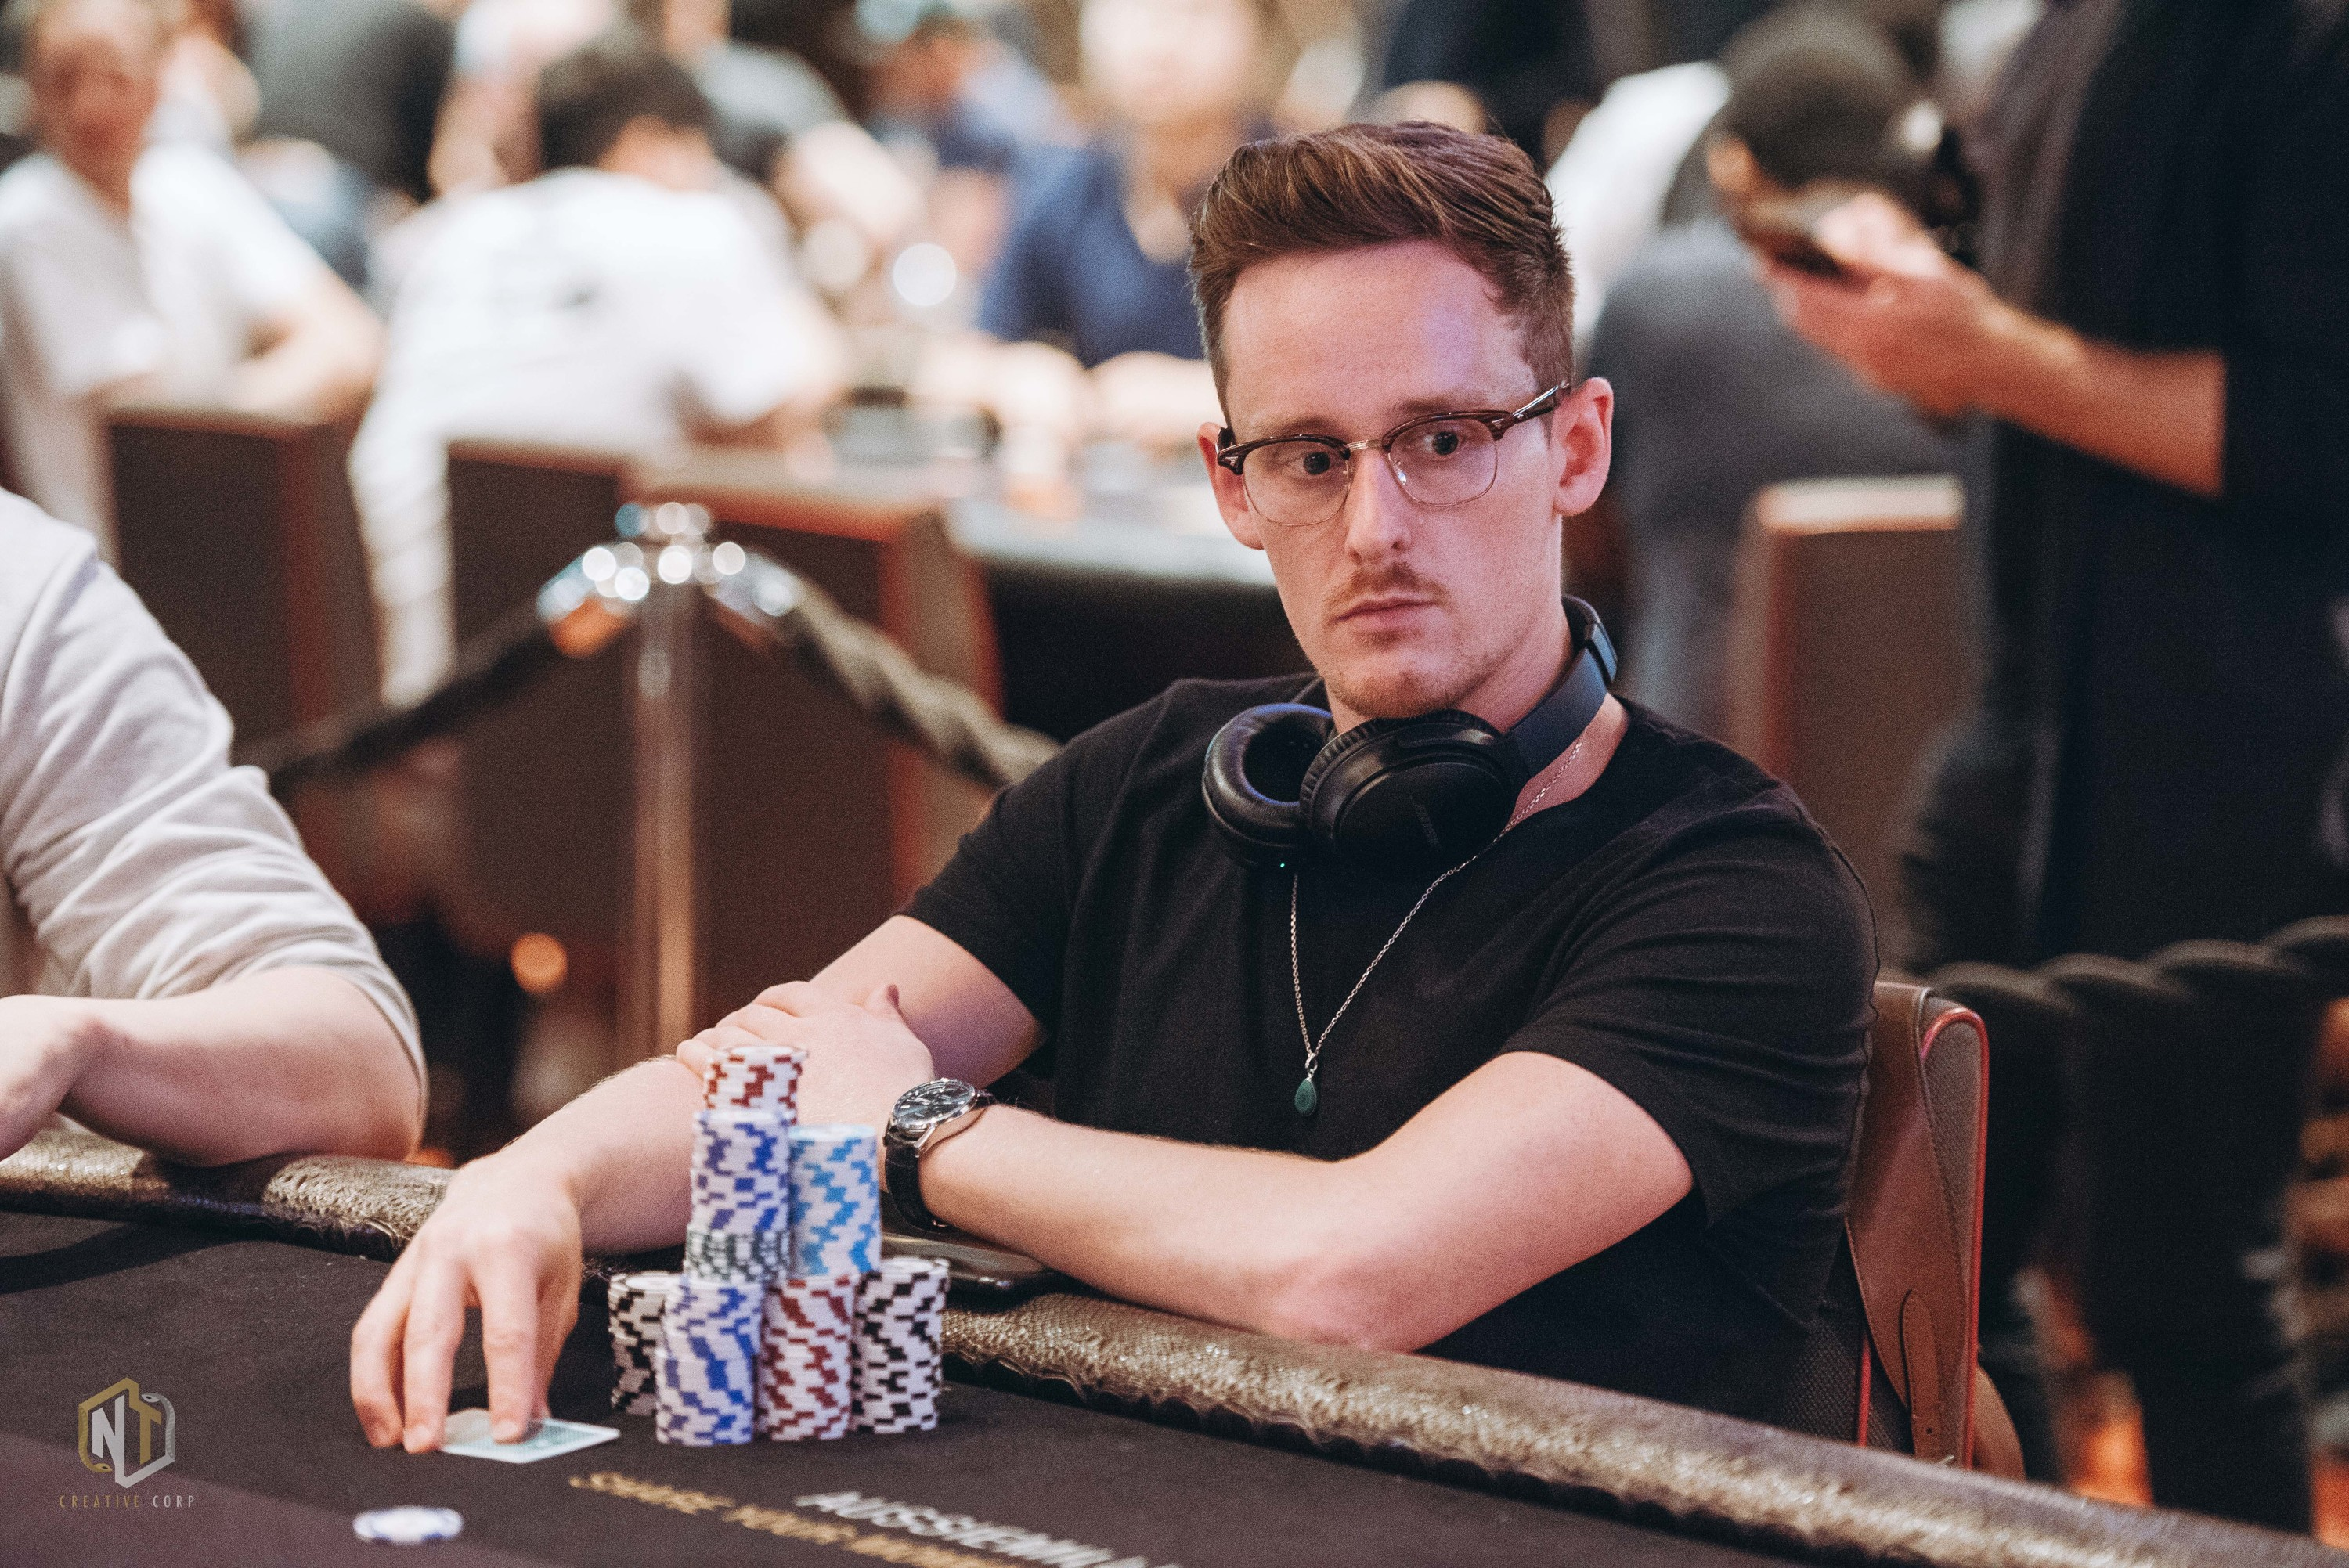 What are the prop bets on poker after dark today betting tips